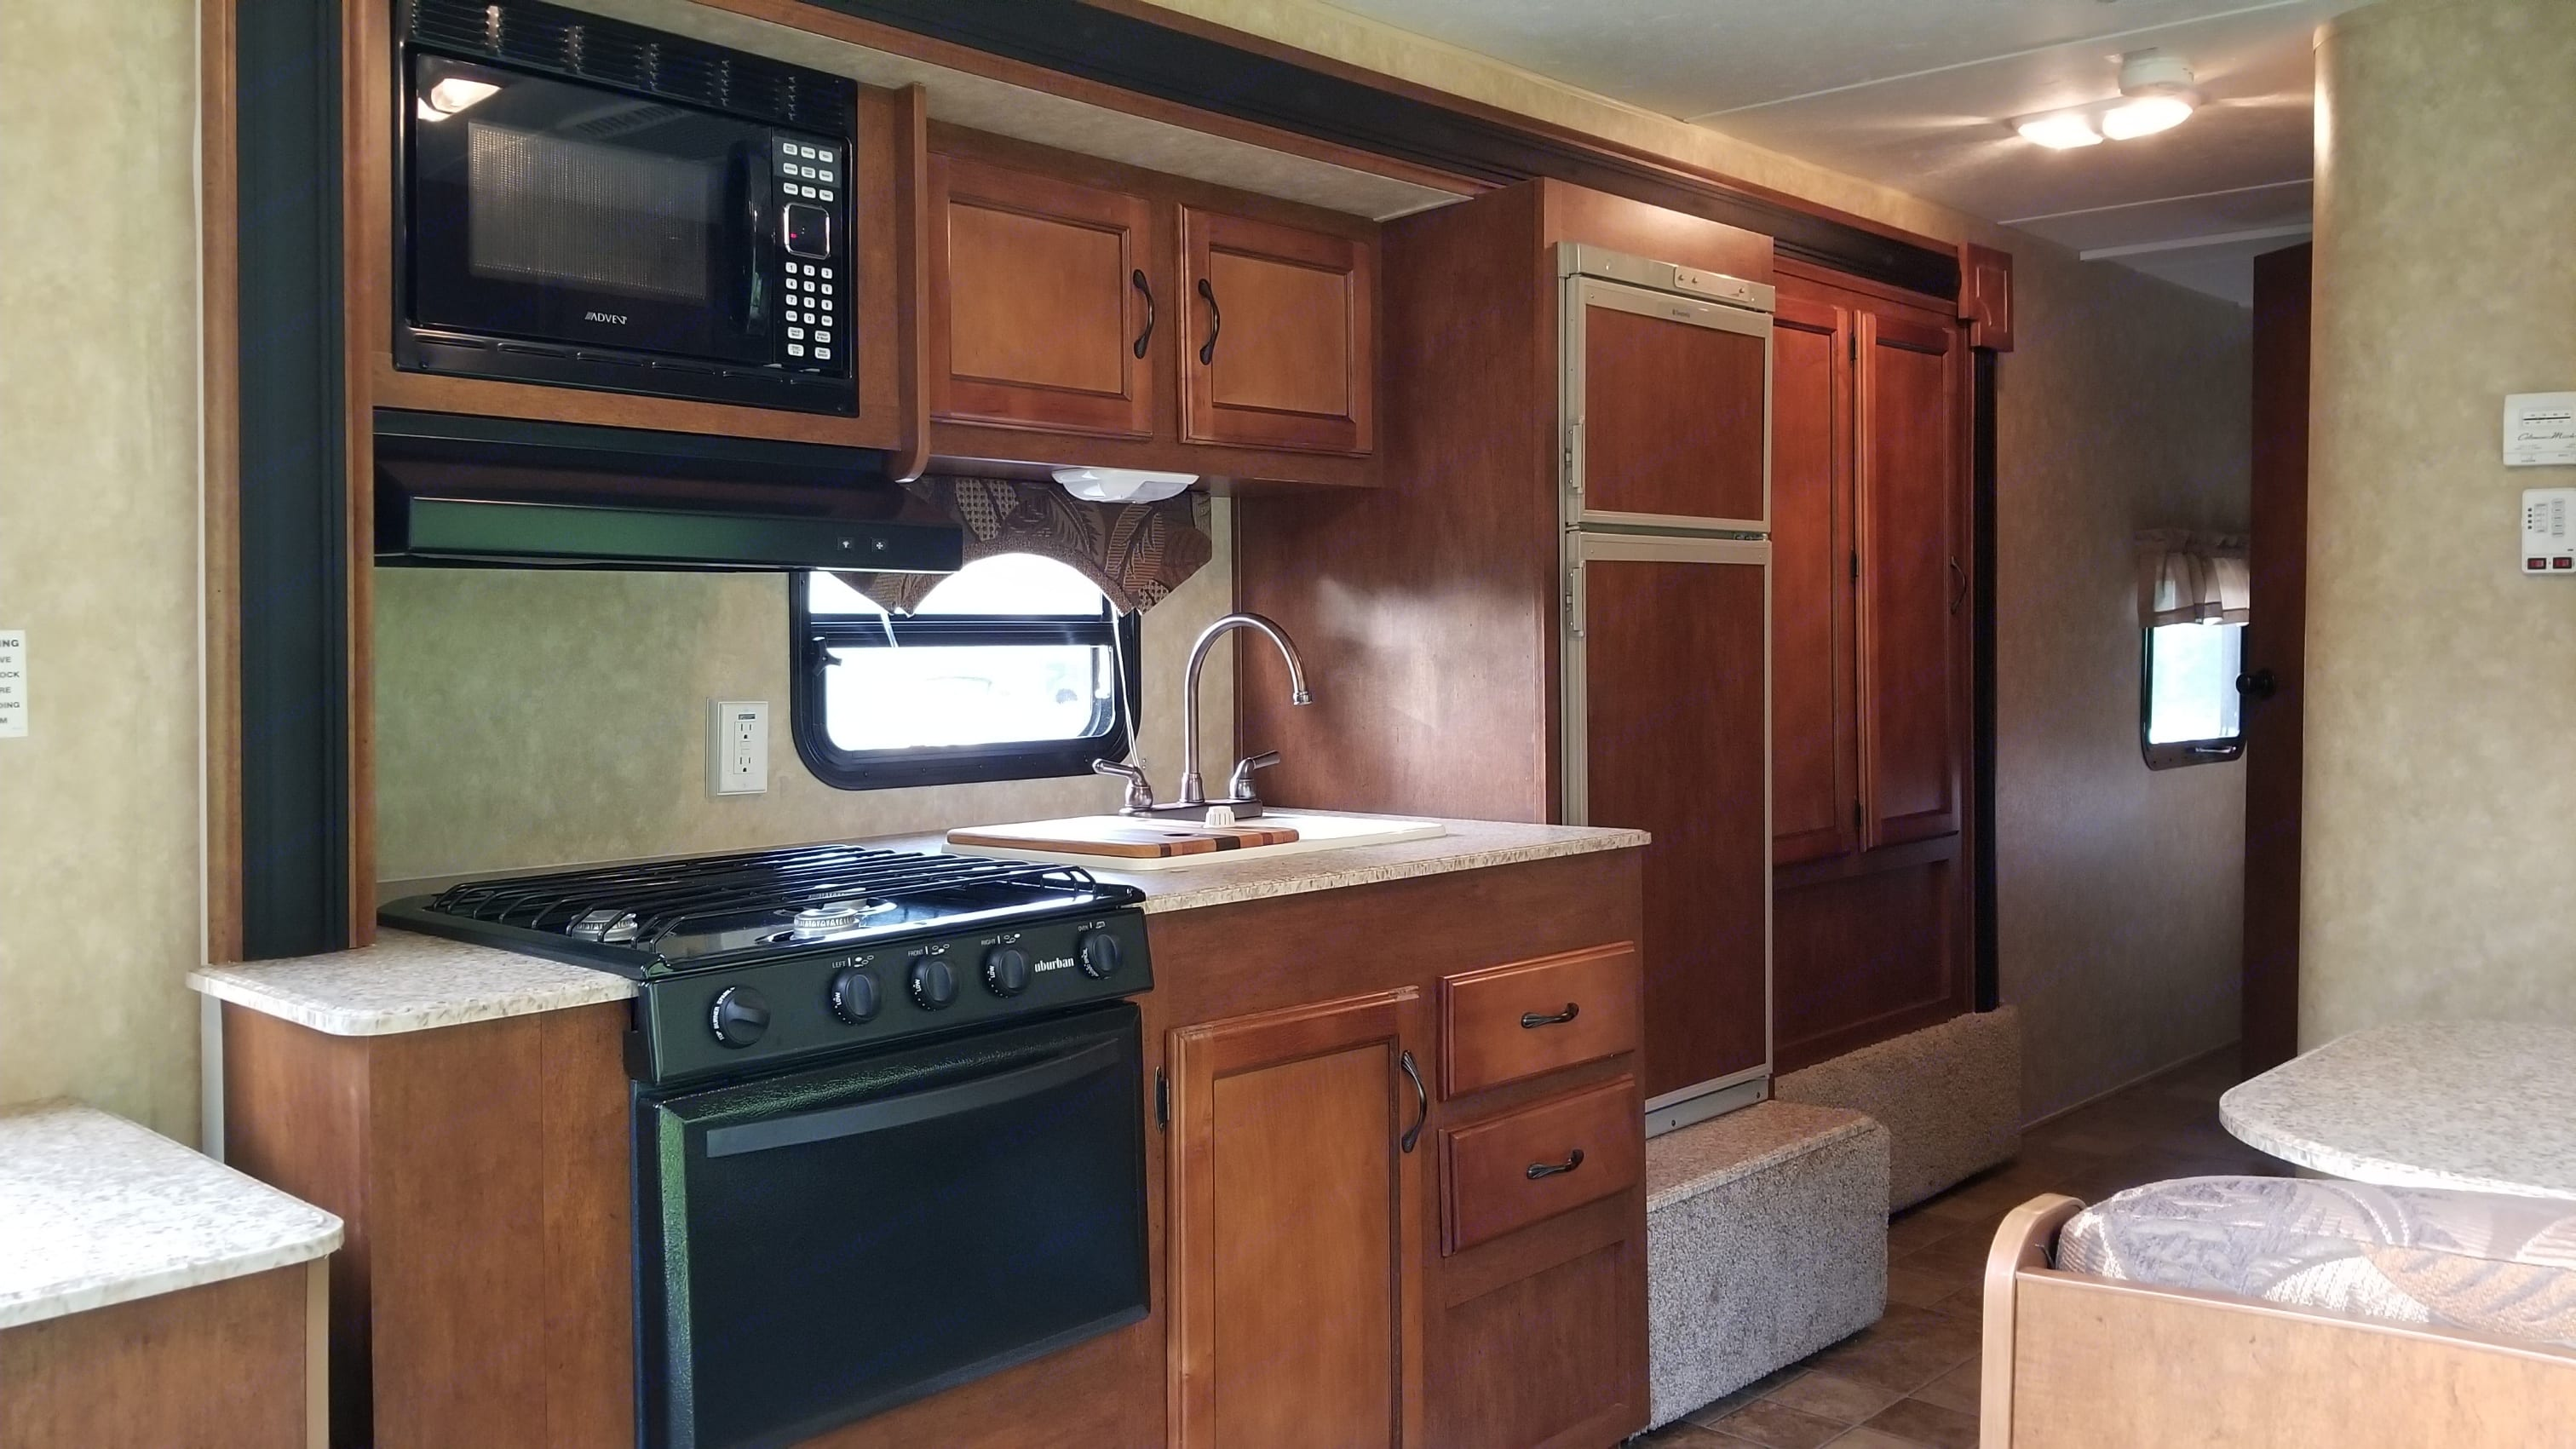 Lovely kitchen. Coachmen Catalina Santara 2013